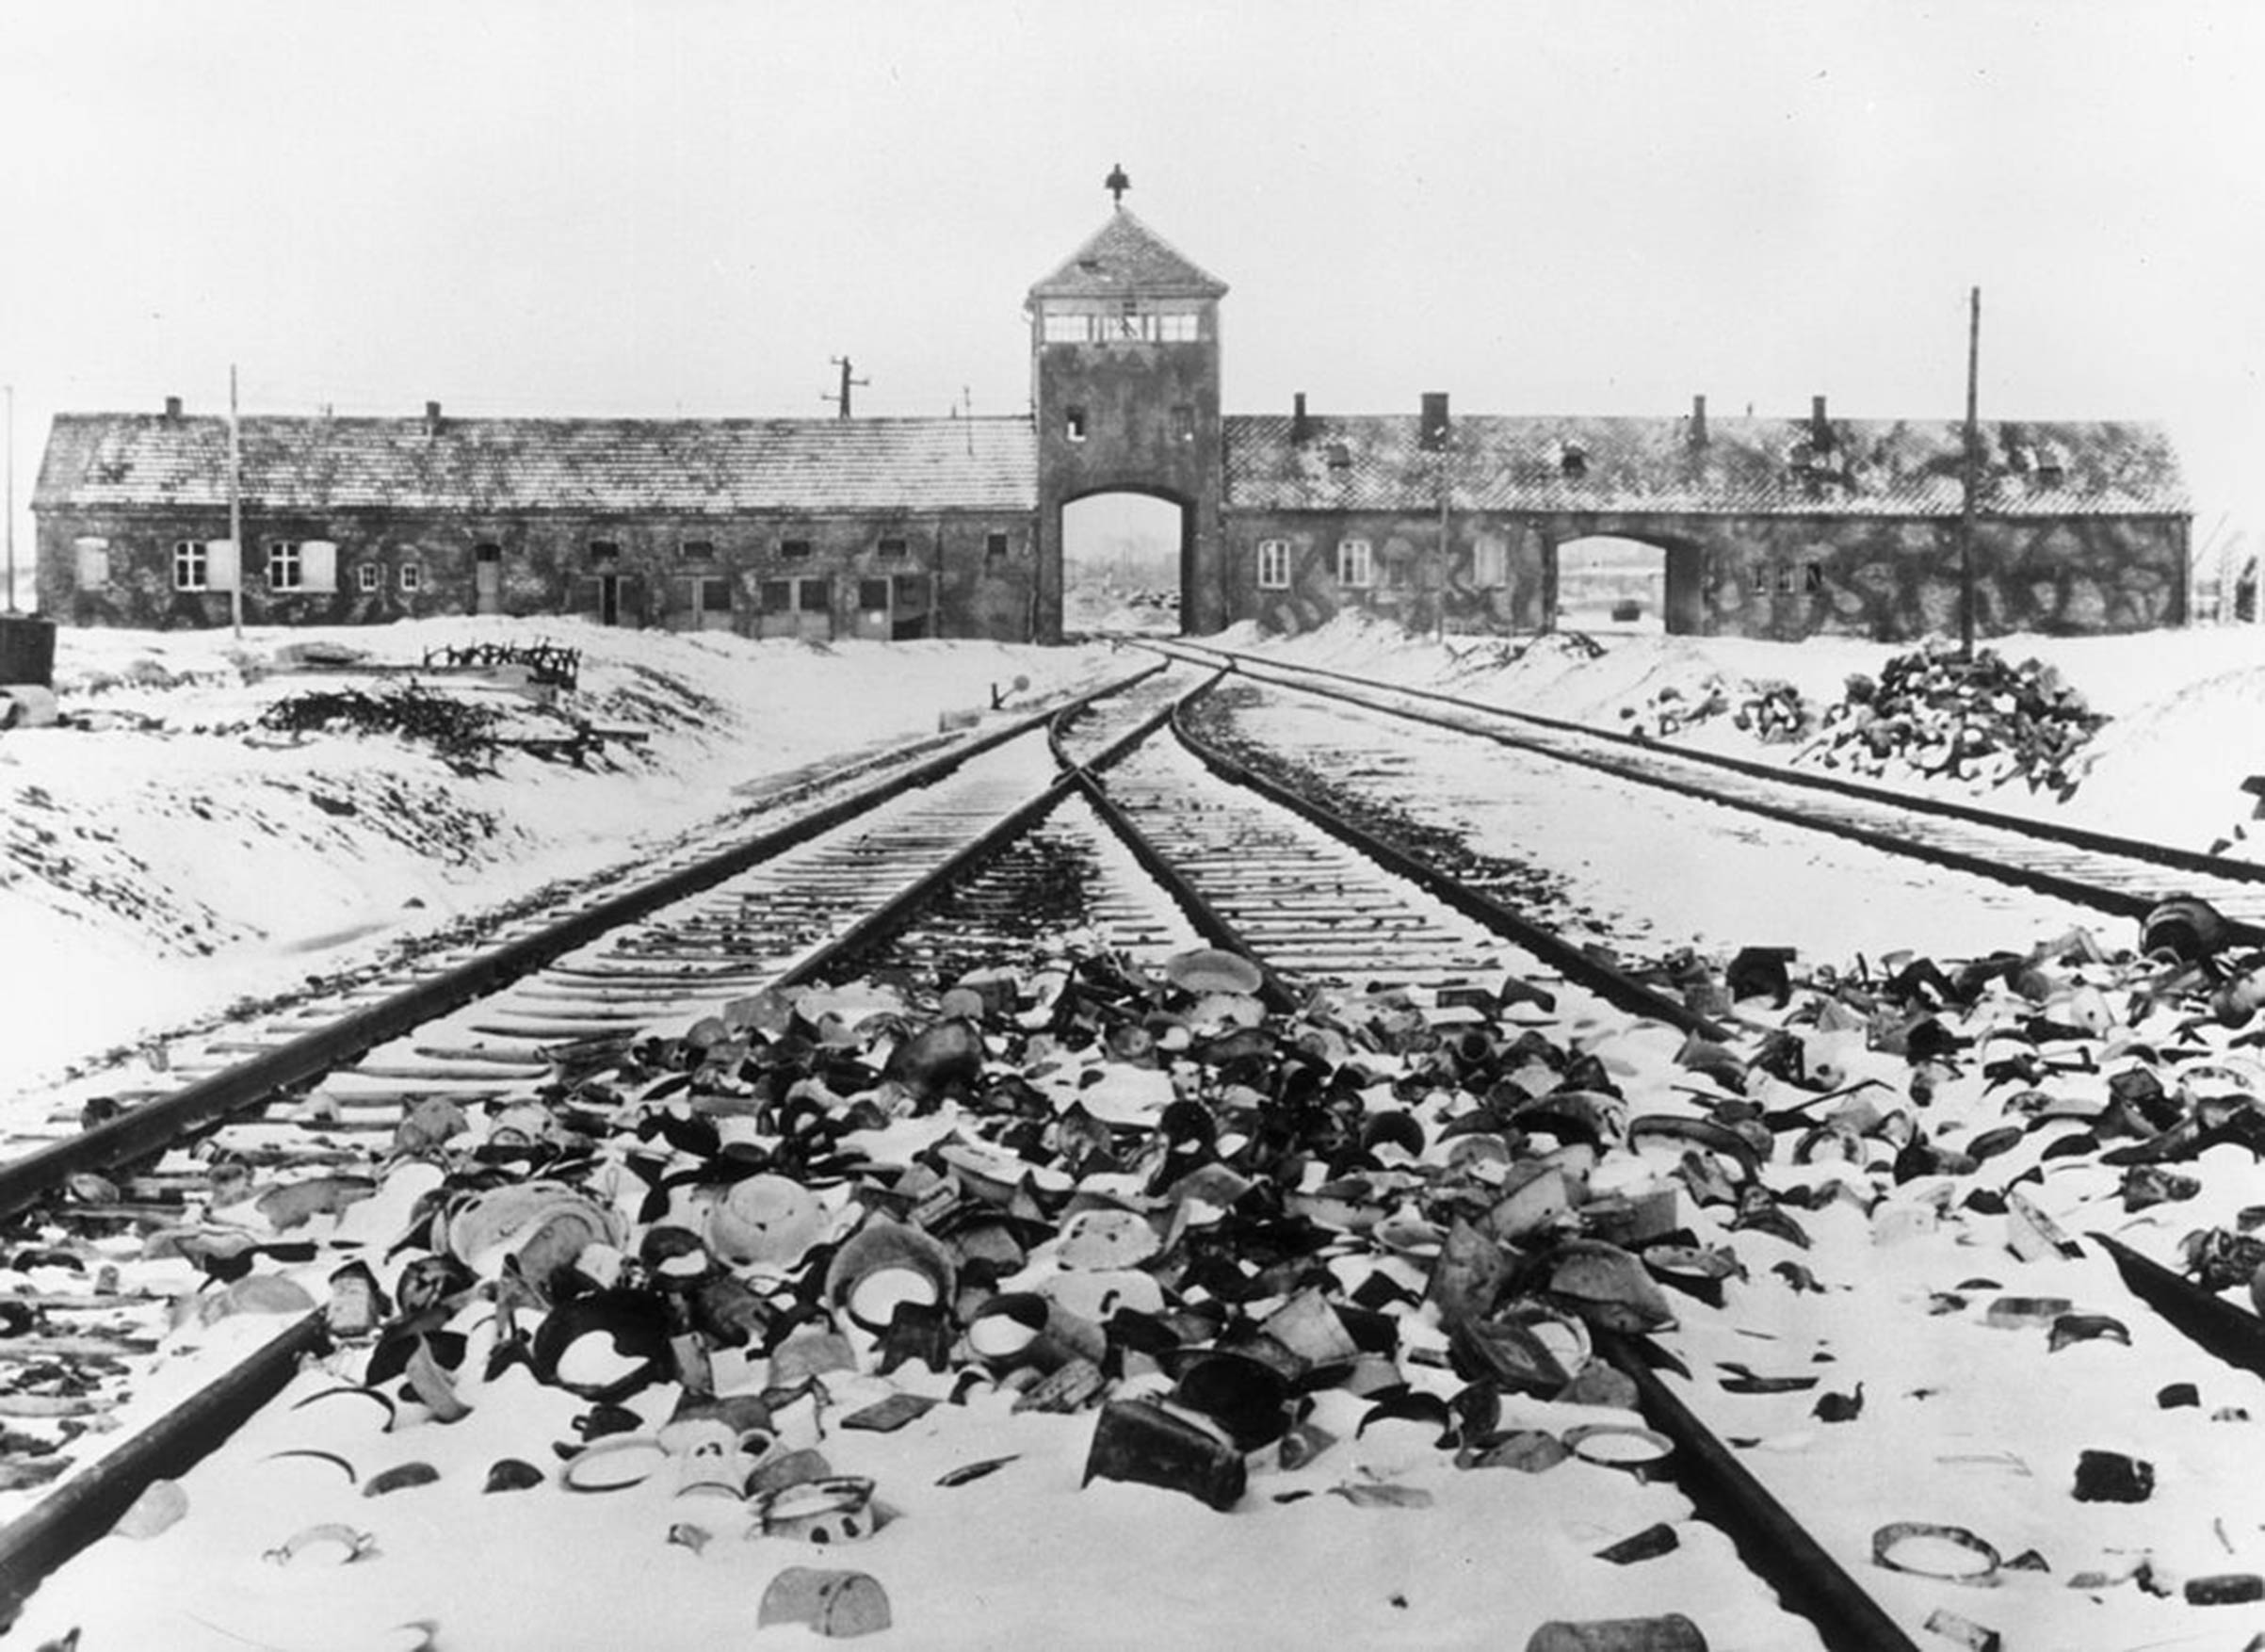 Snow-covered personal effects of those deported to the Auschwitz concentration camp in Poland litter the train tracks leading to the camp's entrance, circa 1945.